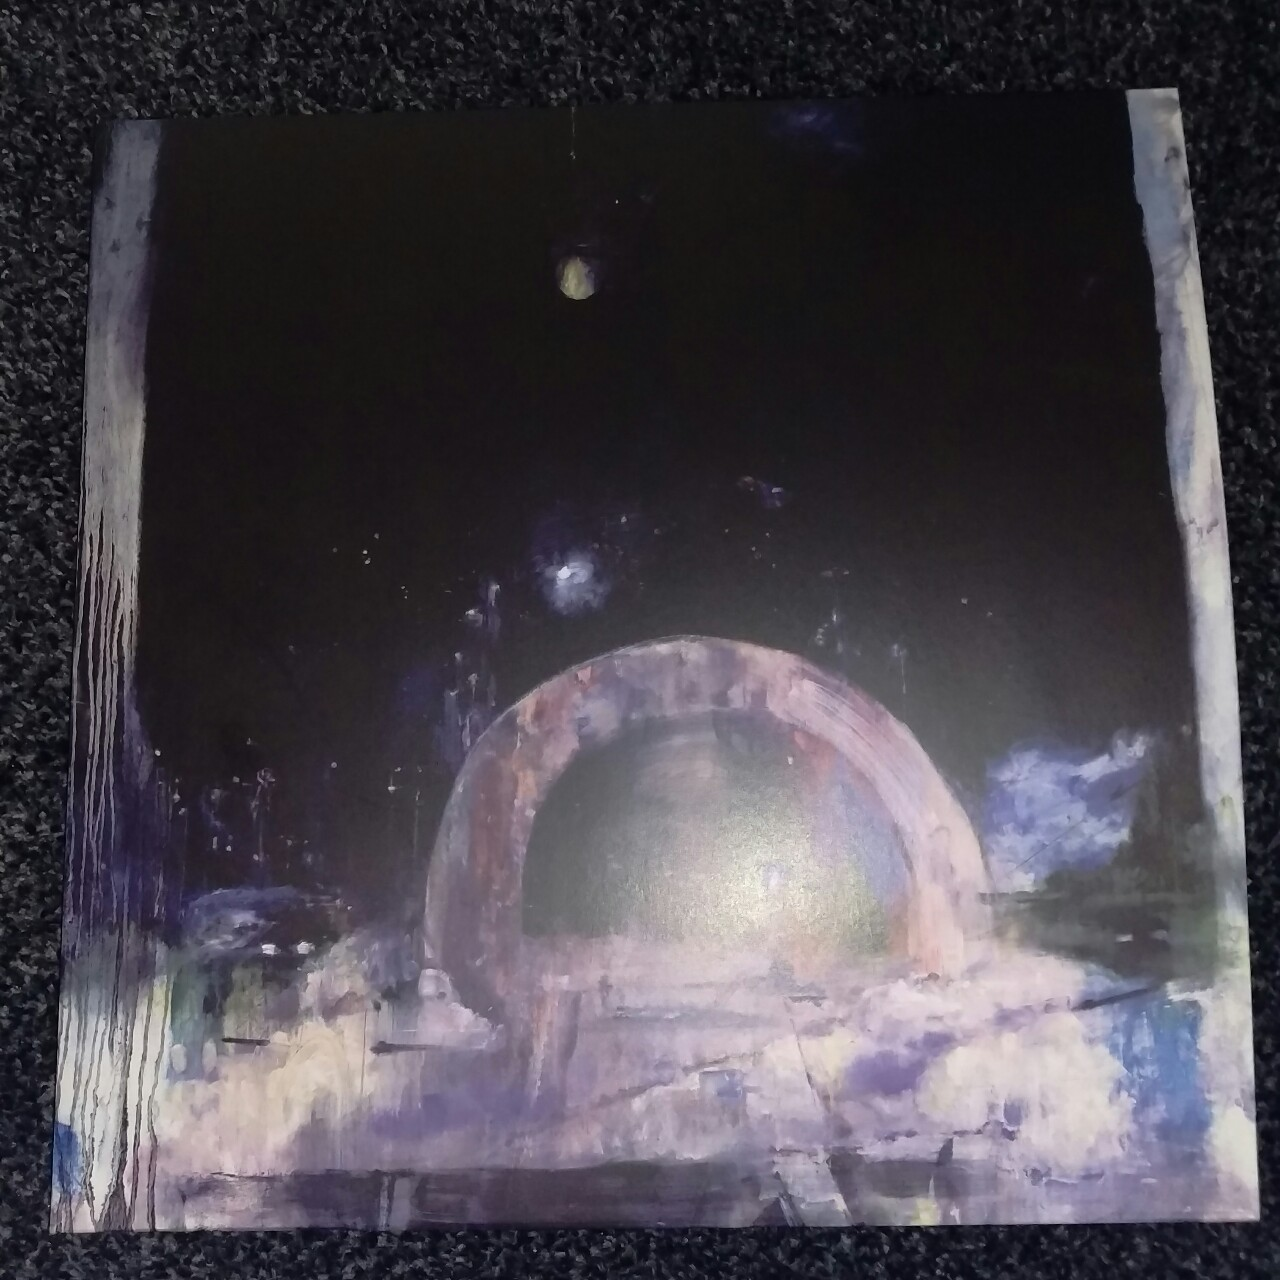 New Vinyl Daughter - Not to Disappear - Depop